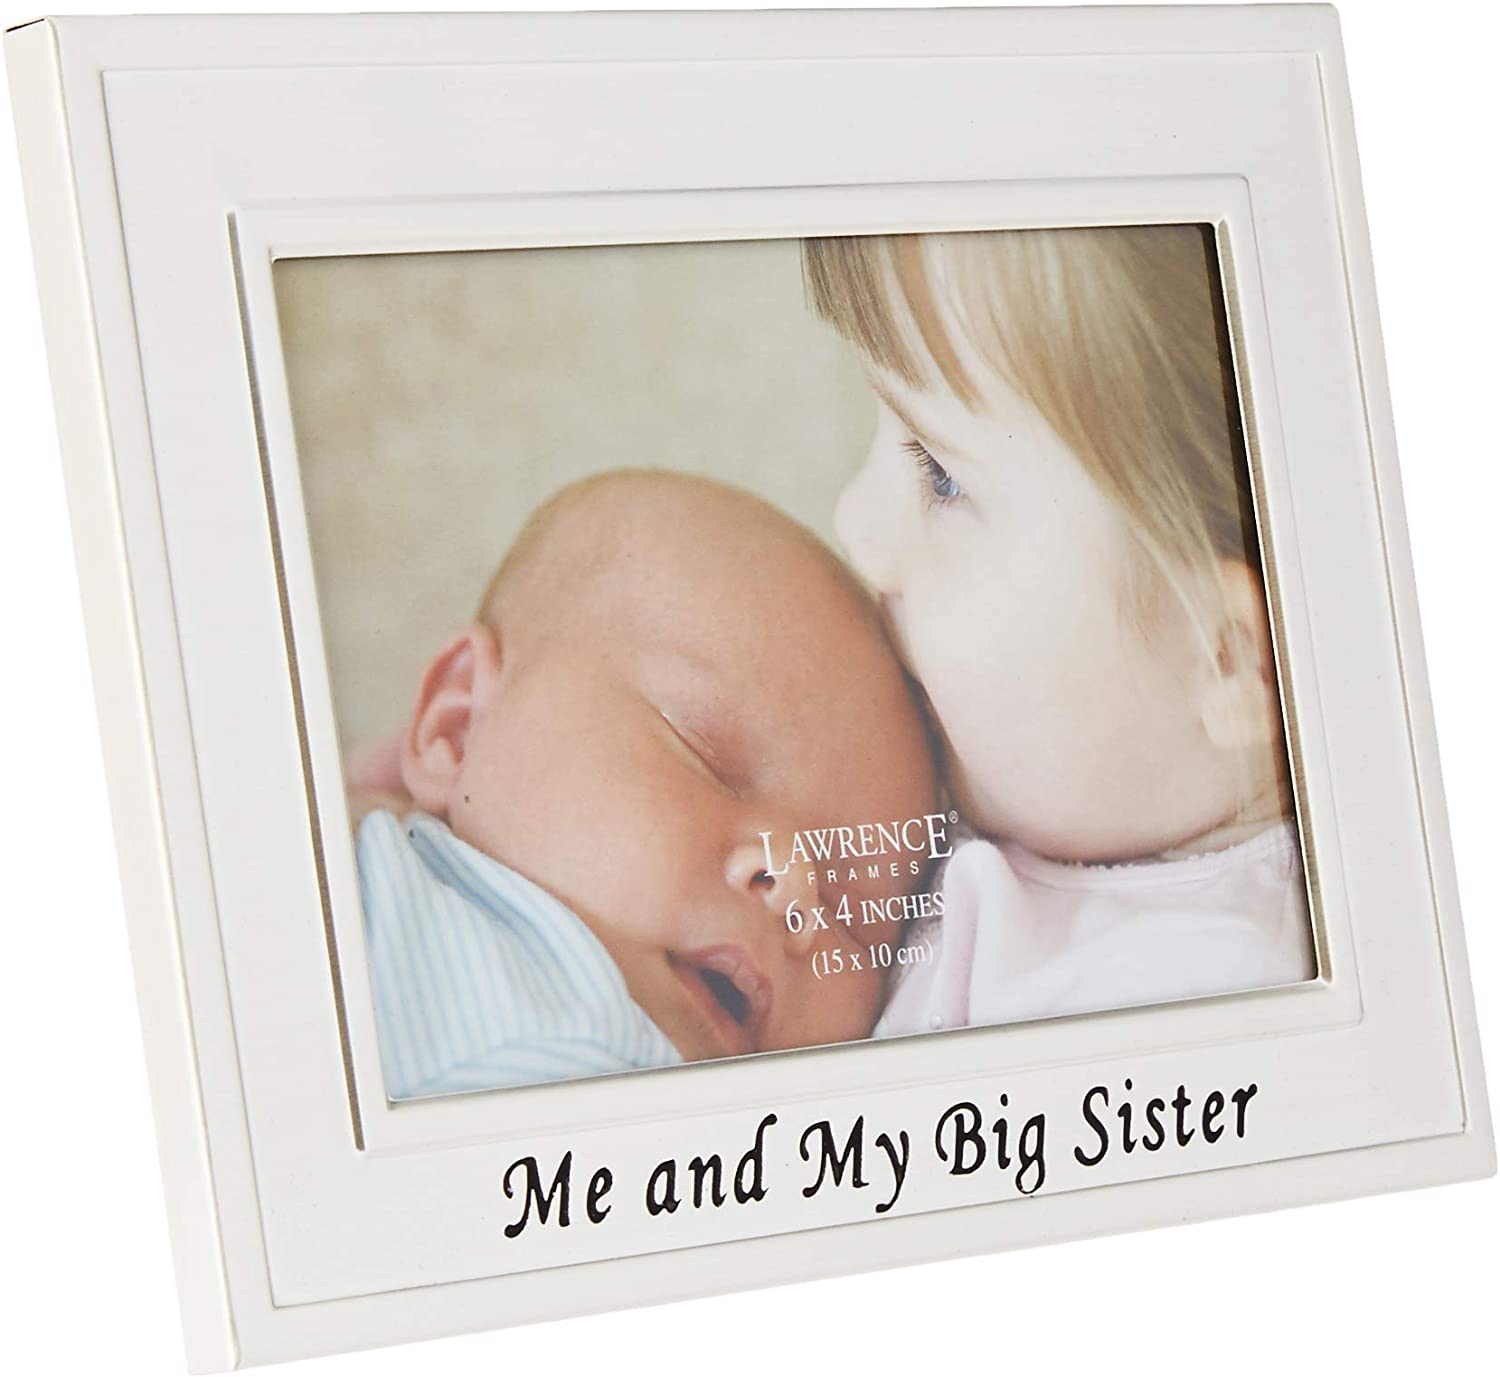 Lawrence Frames Big Sister Silver Plated 6x4 Picture Frame - Me